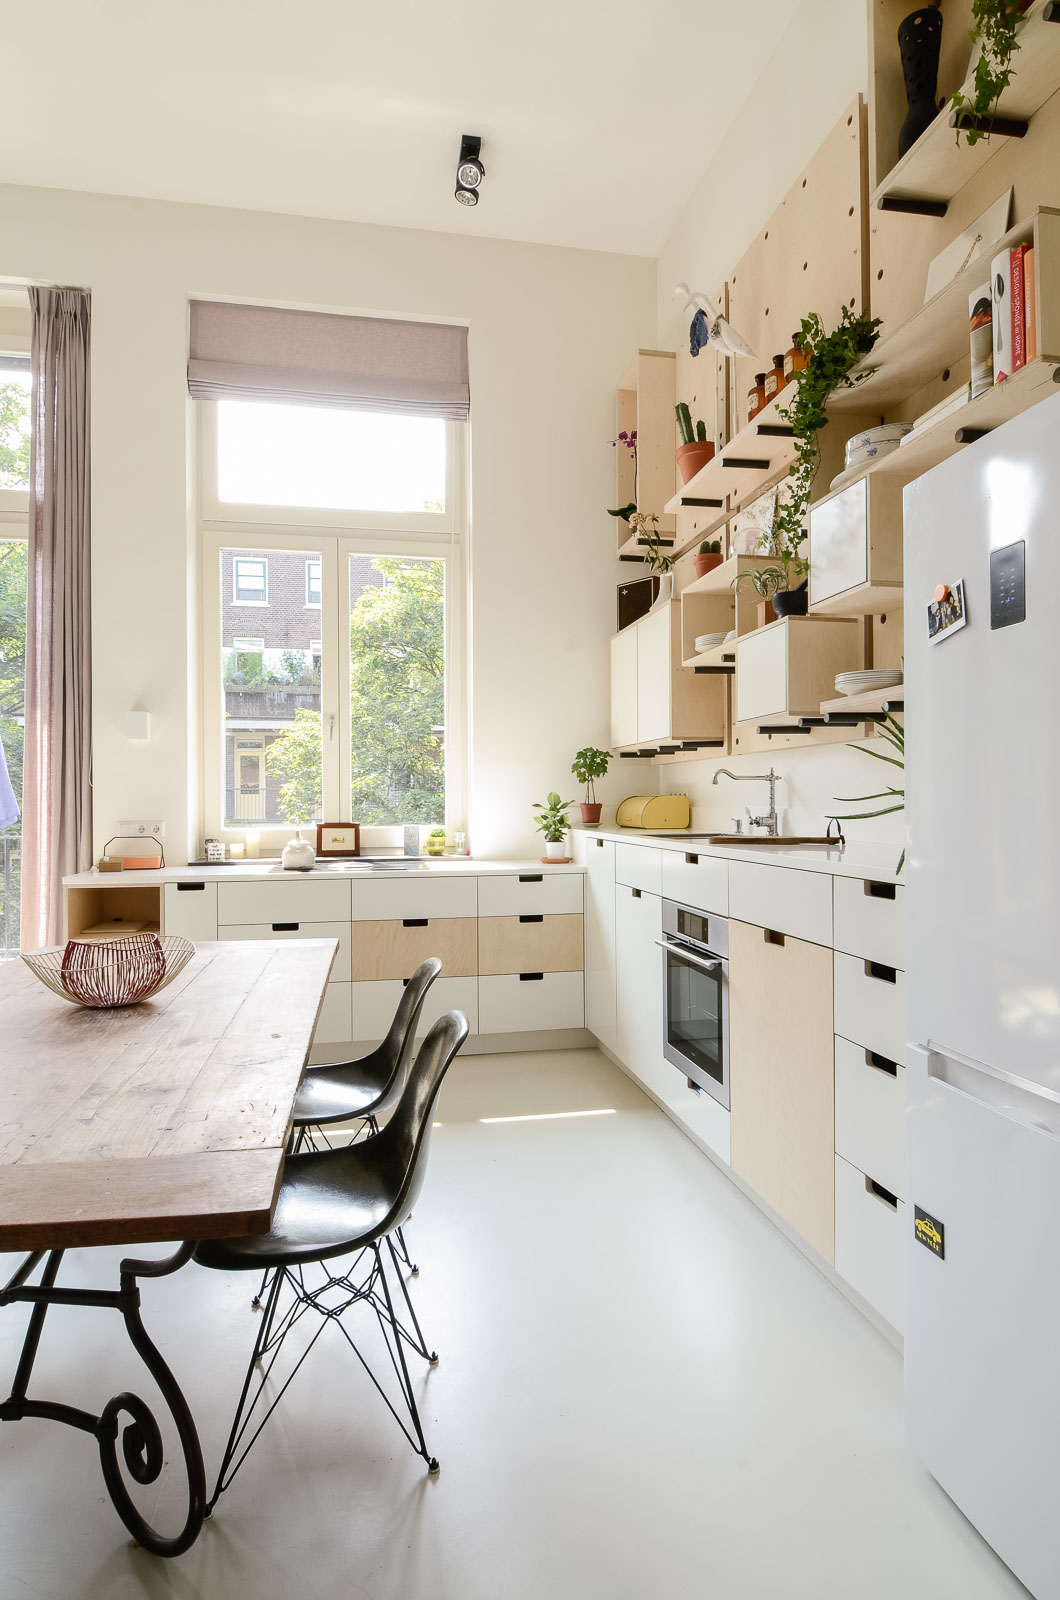 Old School Building Was Converted Into A New Apartment In